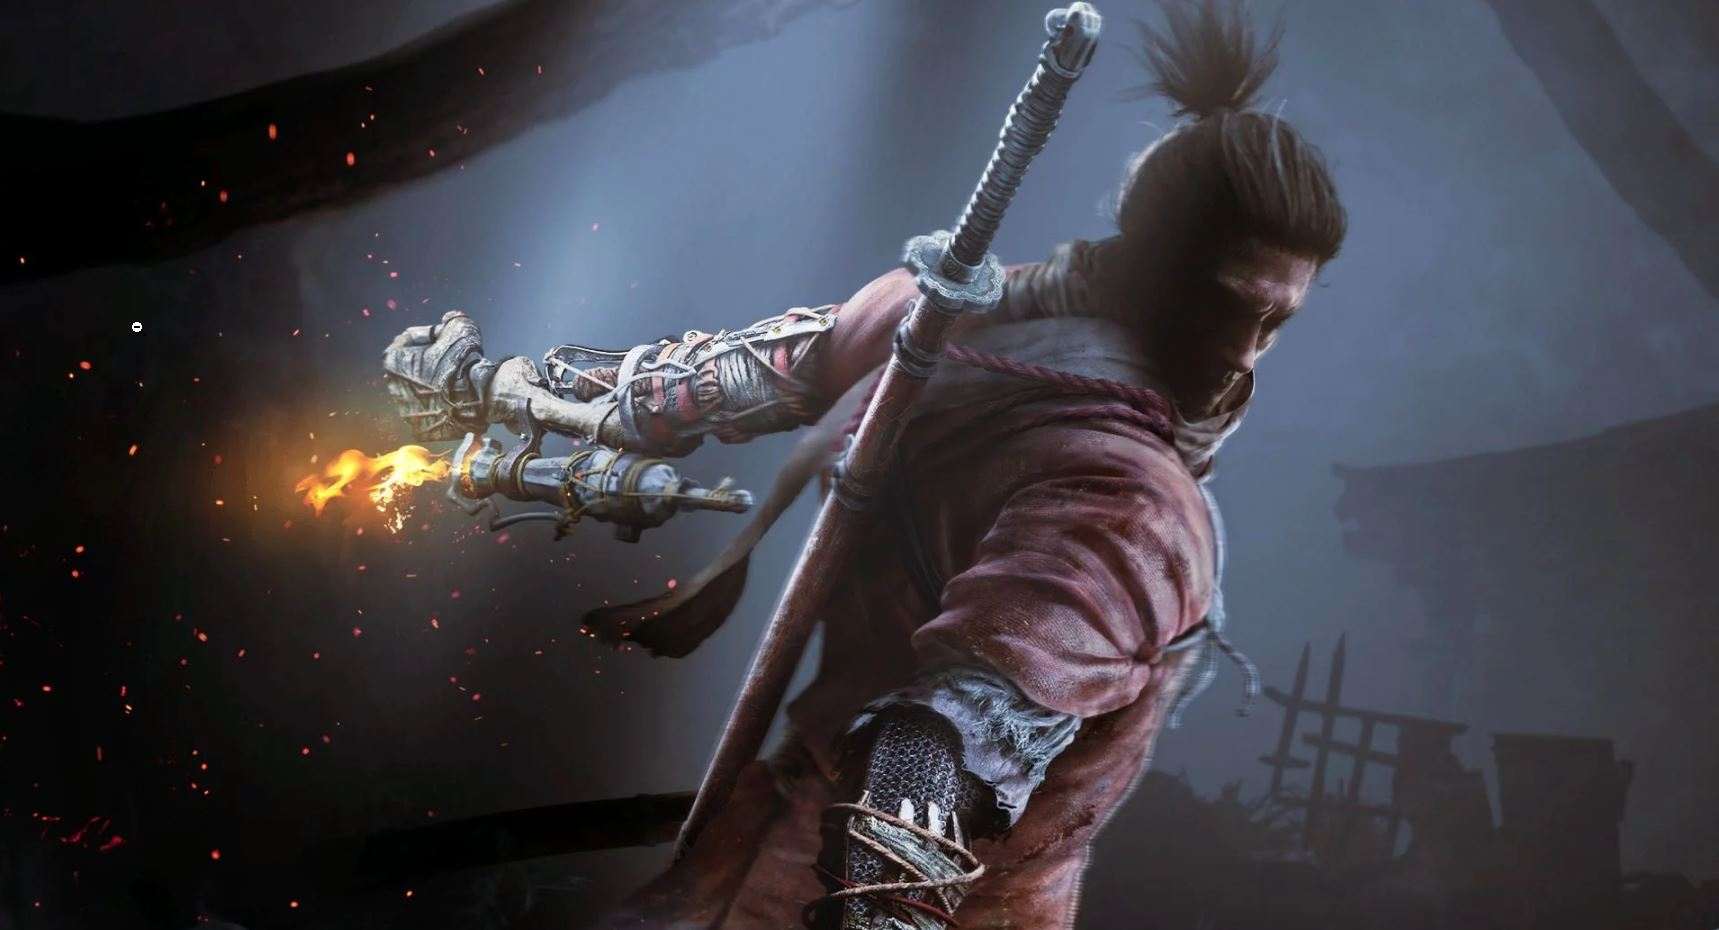 Sekiro: Shadows Die Twice keeps track of your progress through an auto-save mechanic, which can be triggered by doing just about anything including resting at Sculptor's Idols.